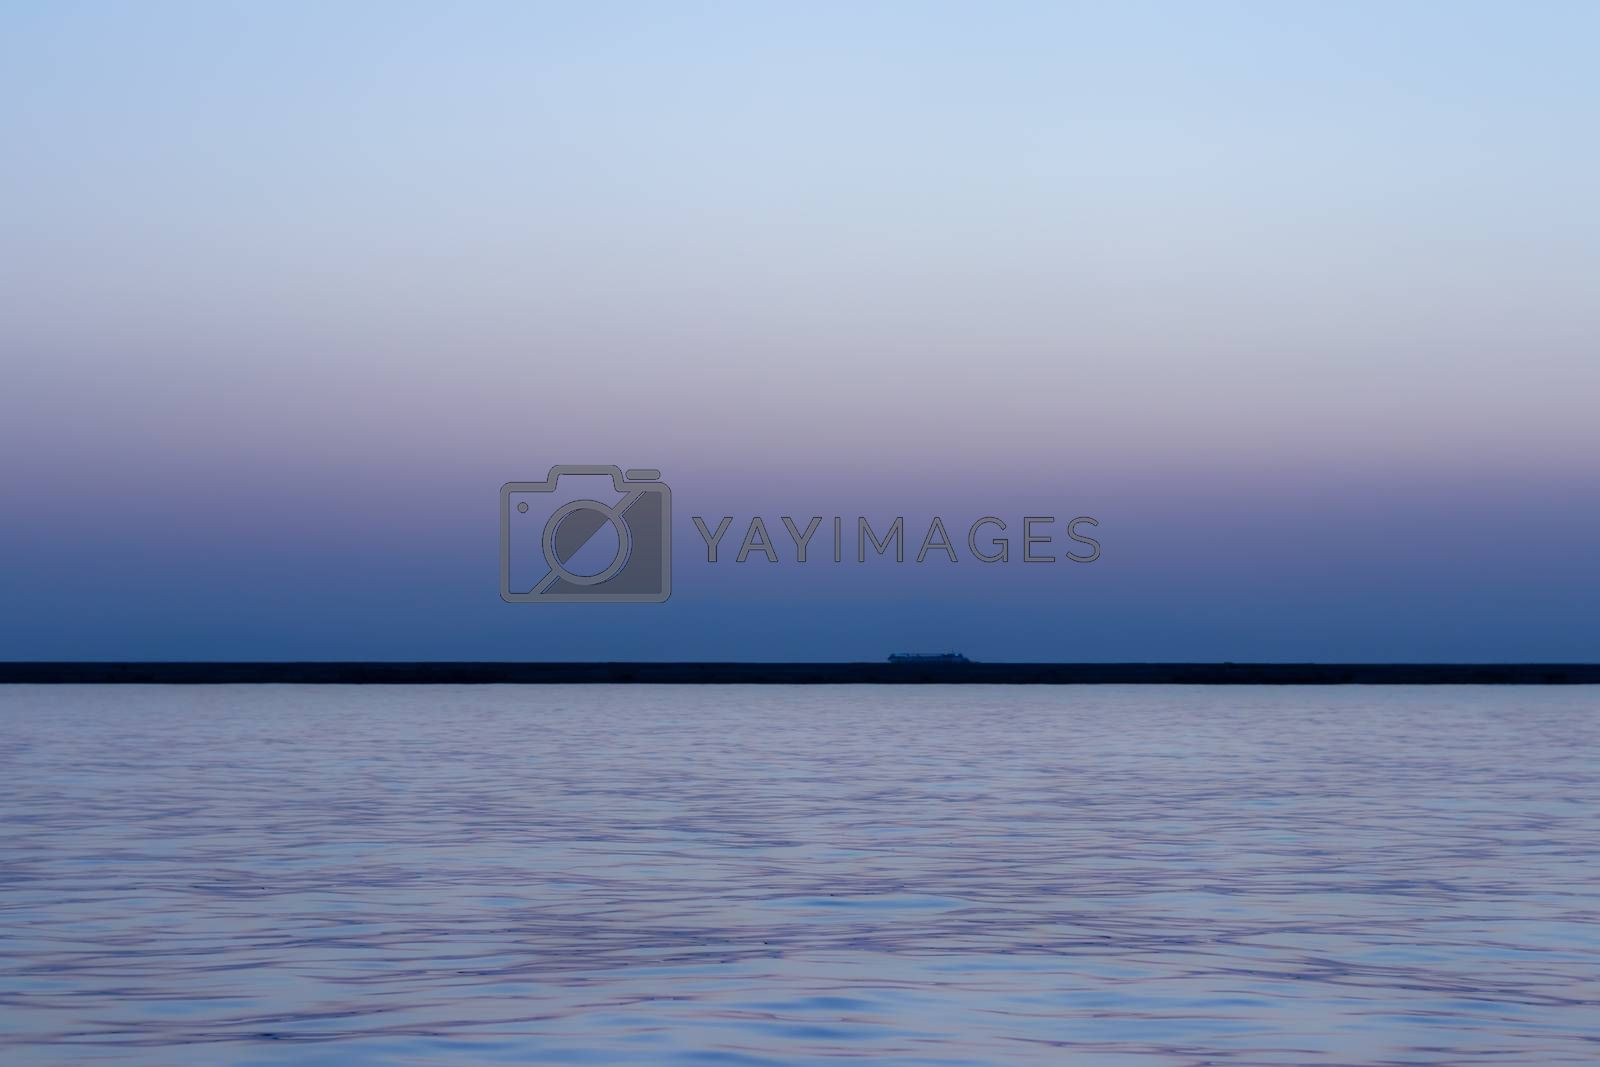 a wide seascape shoot with very well composed colors and black horizon from izmir bay - blue color dominated. photo has taken at izmir/turkey.